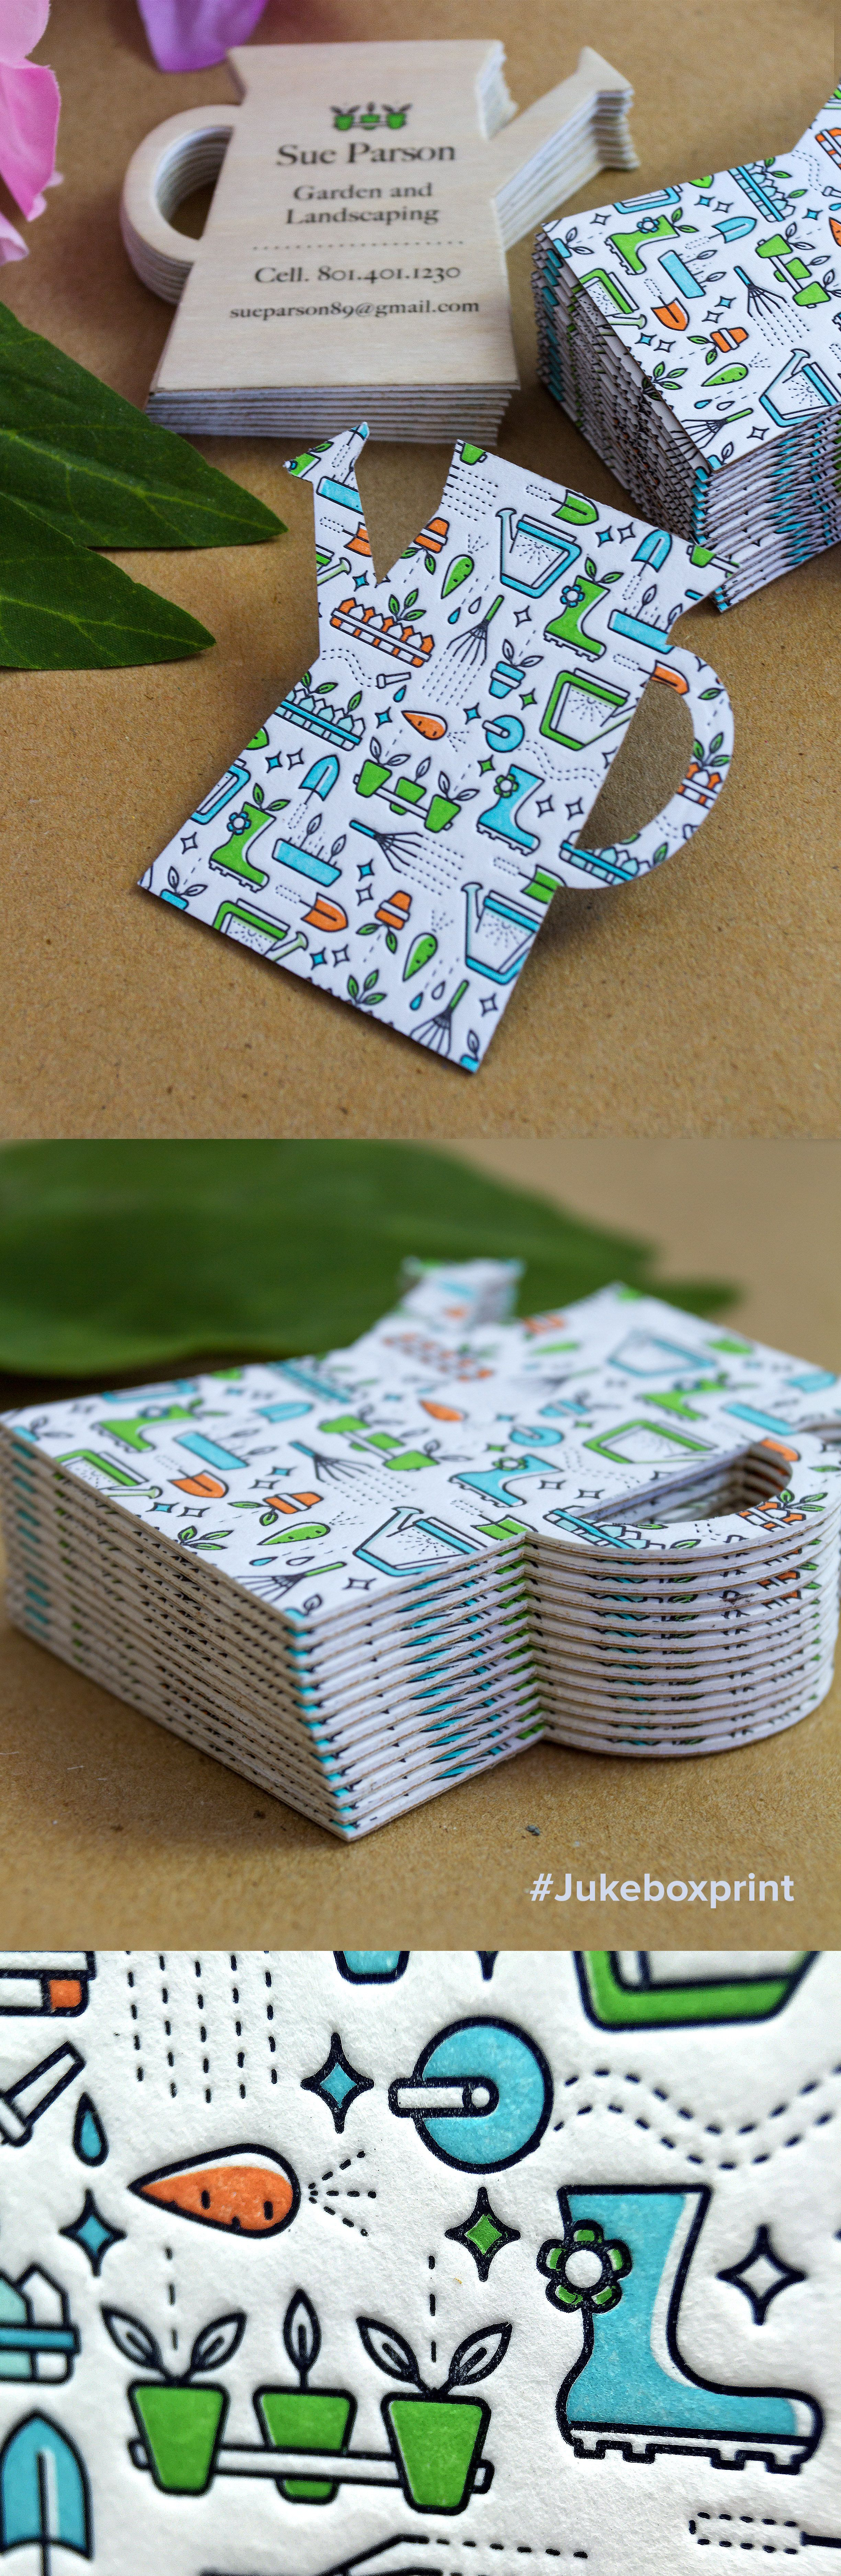 adorable custom shaped letterpress business cards printed on